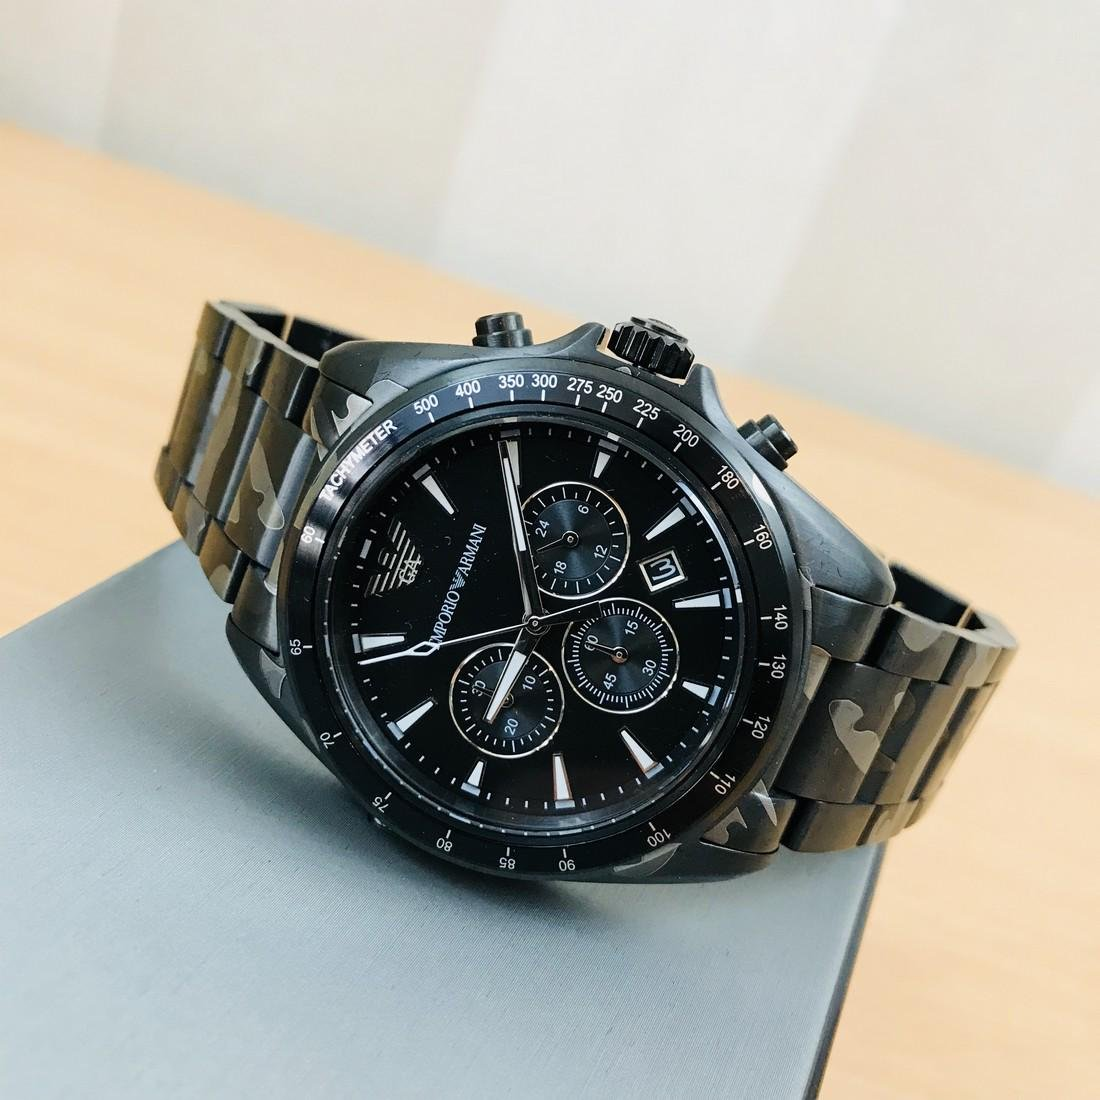 Emporio Armani – Camouflage-print Chronograph Watch